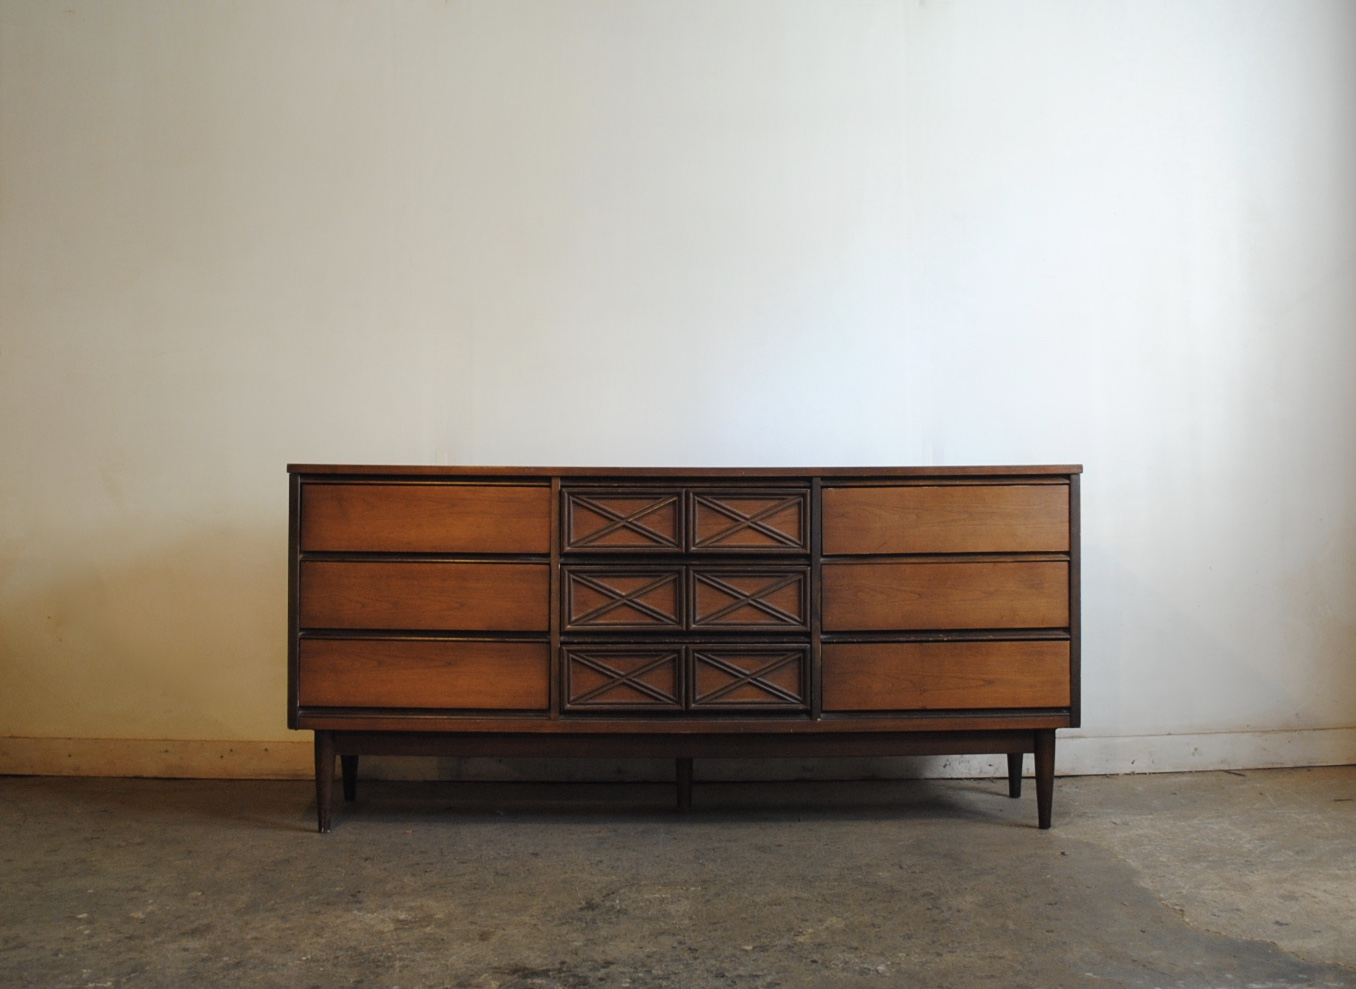 midcentury modern walnut nine drawer dresser has very durable laminate top dimensions are 64u2033w x 1775u2033d x 30u2033h please contact me with any questions